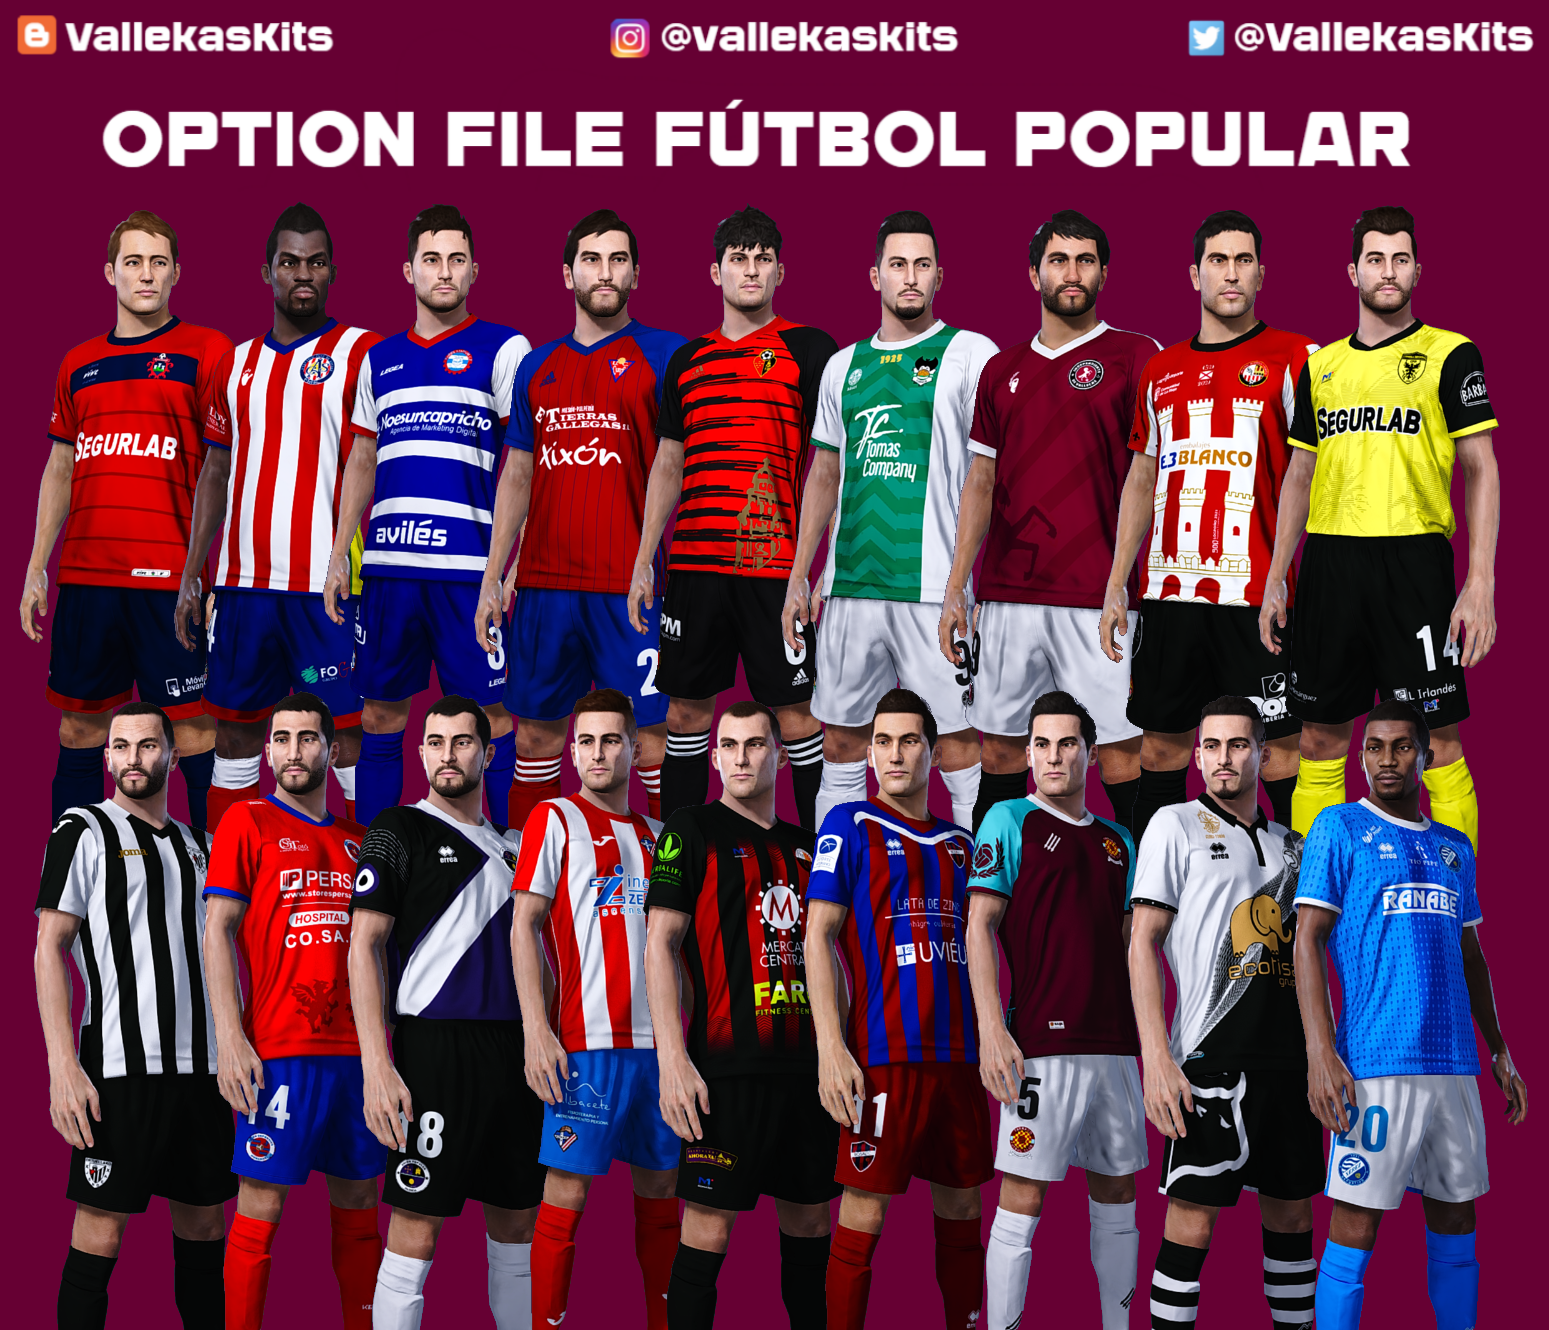 Option File fútbol popular